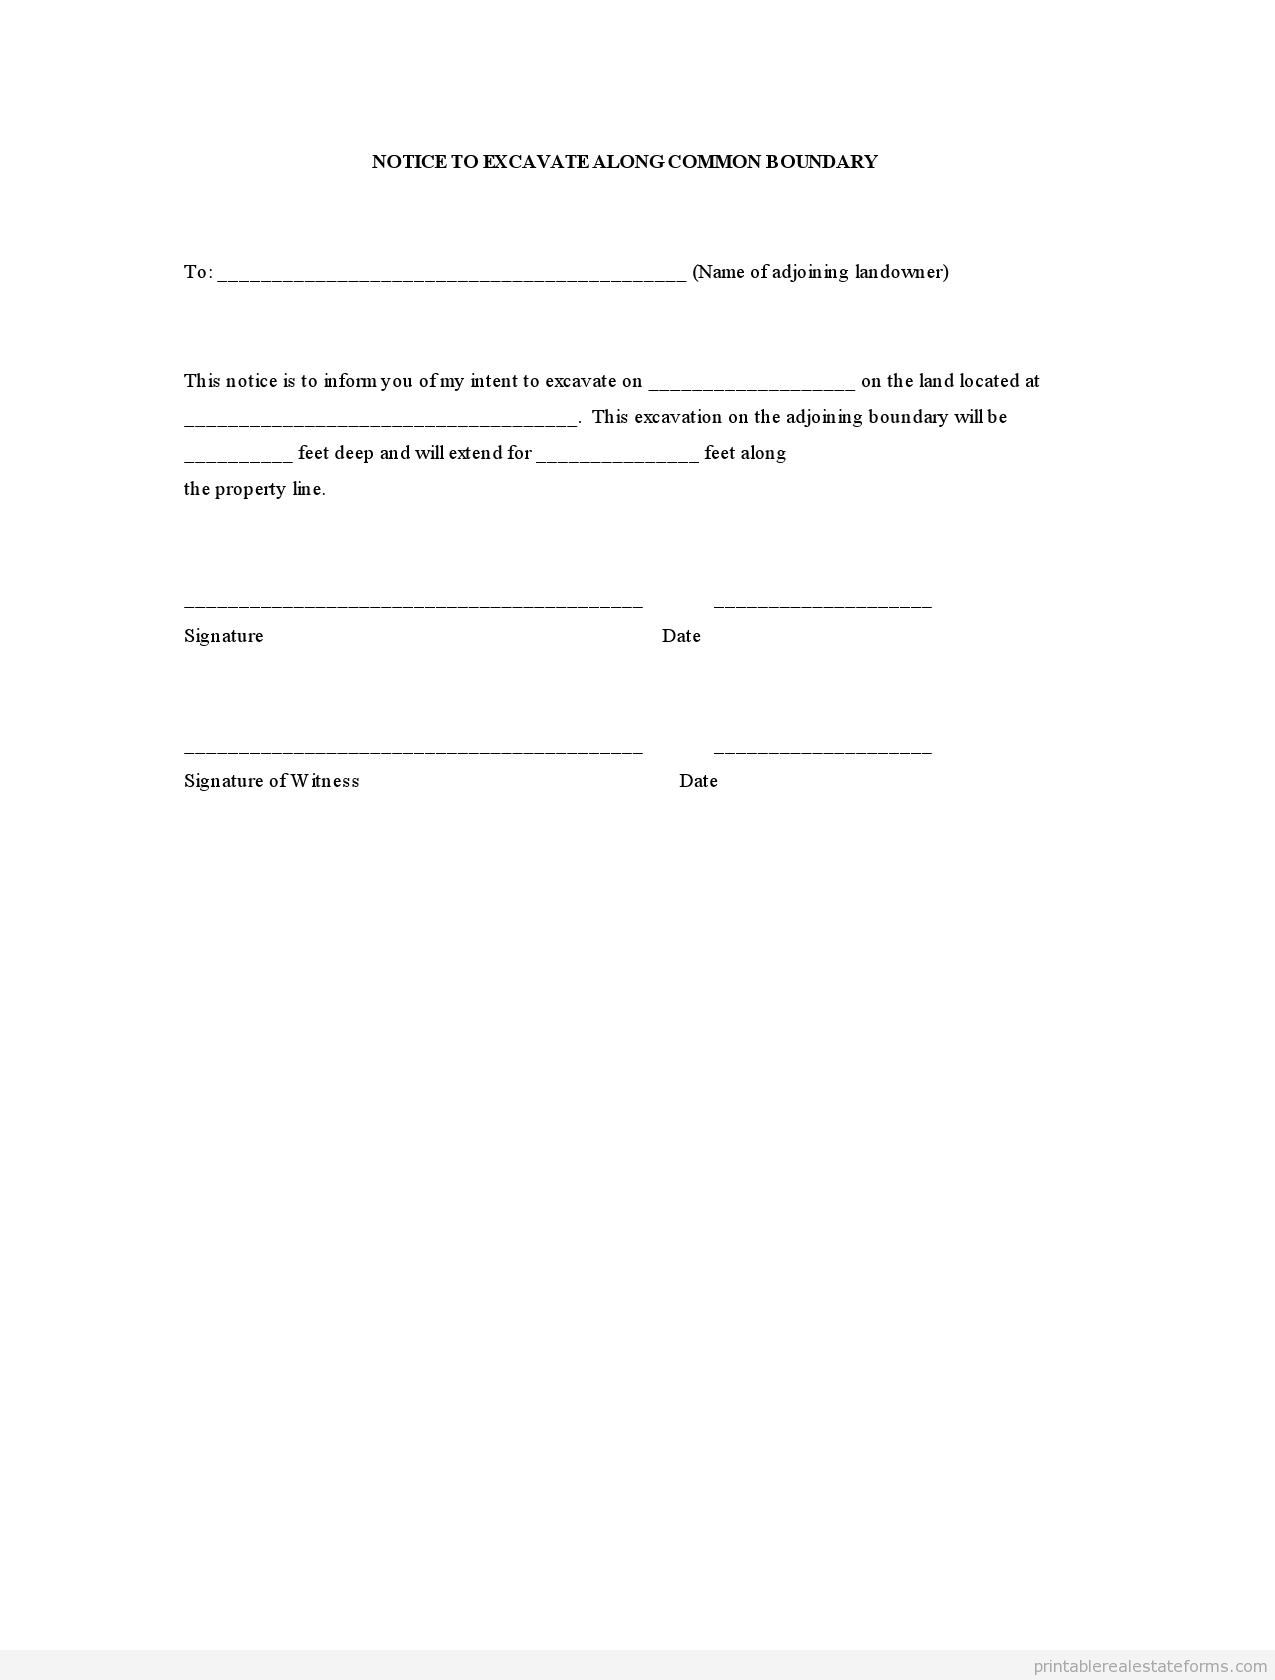 notice to excavate along common boundary template form